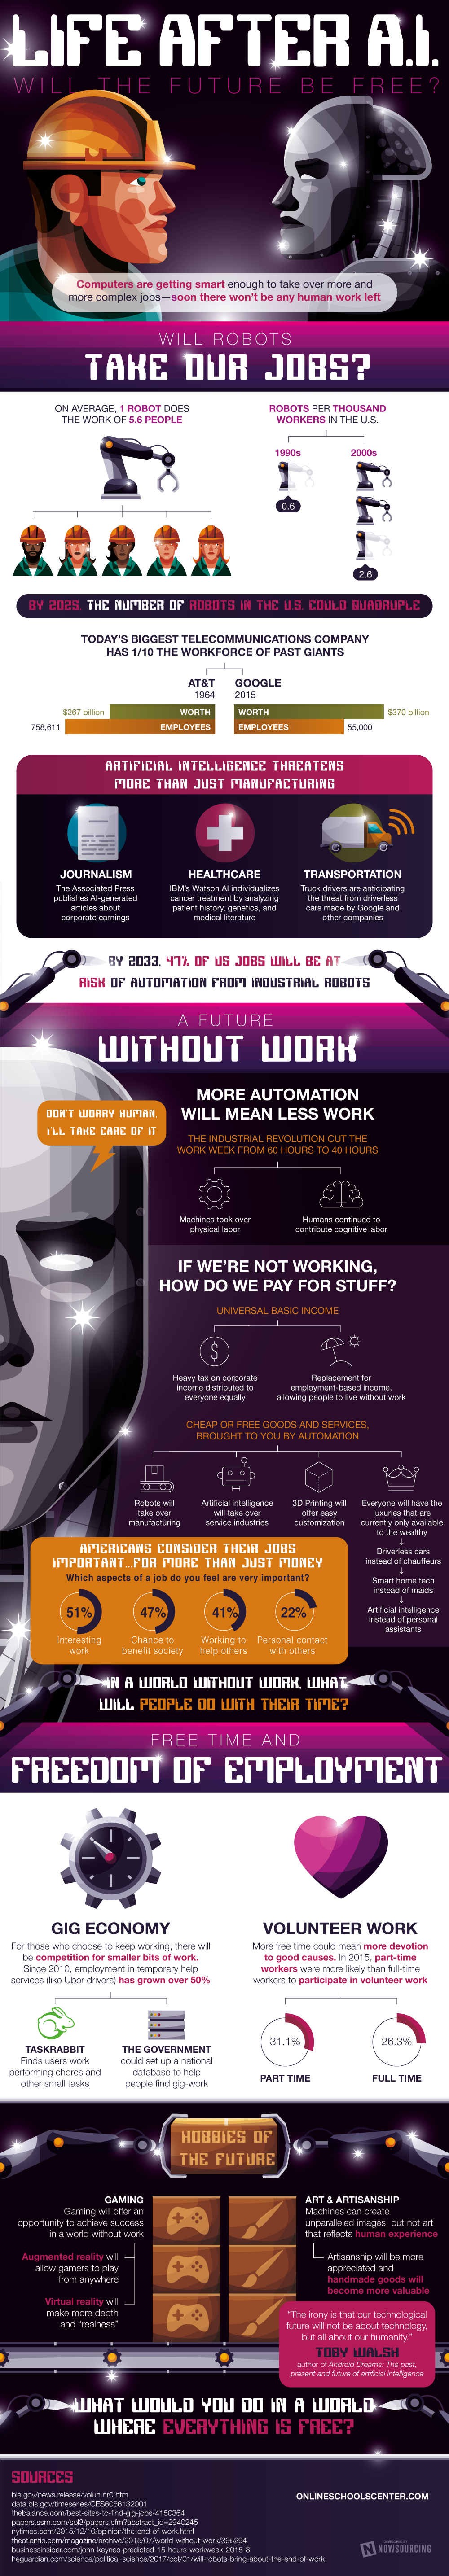 What Will Life Look Like After The AI Revolution? - #infographic